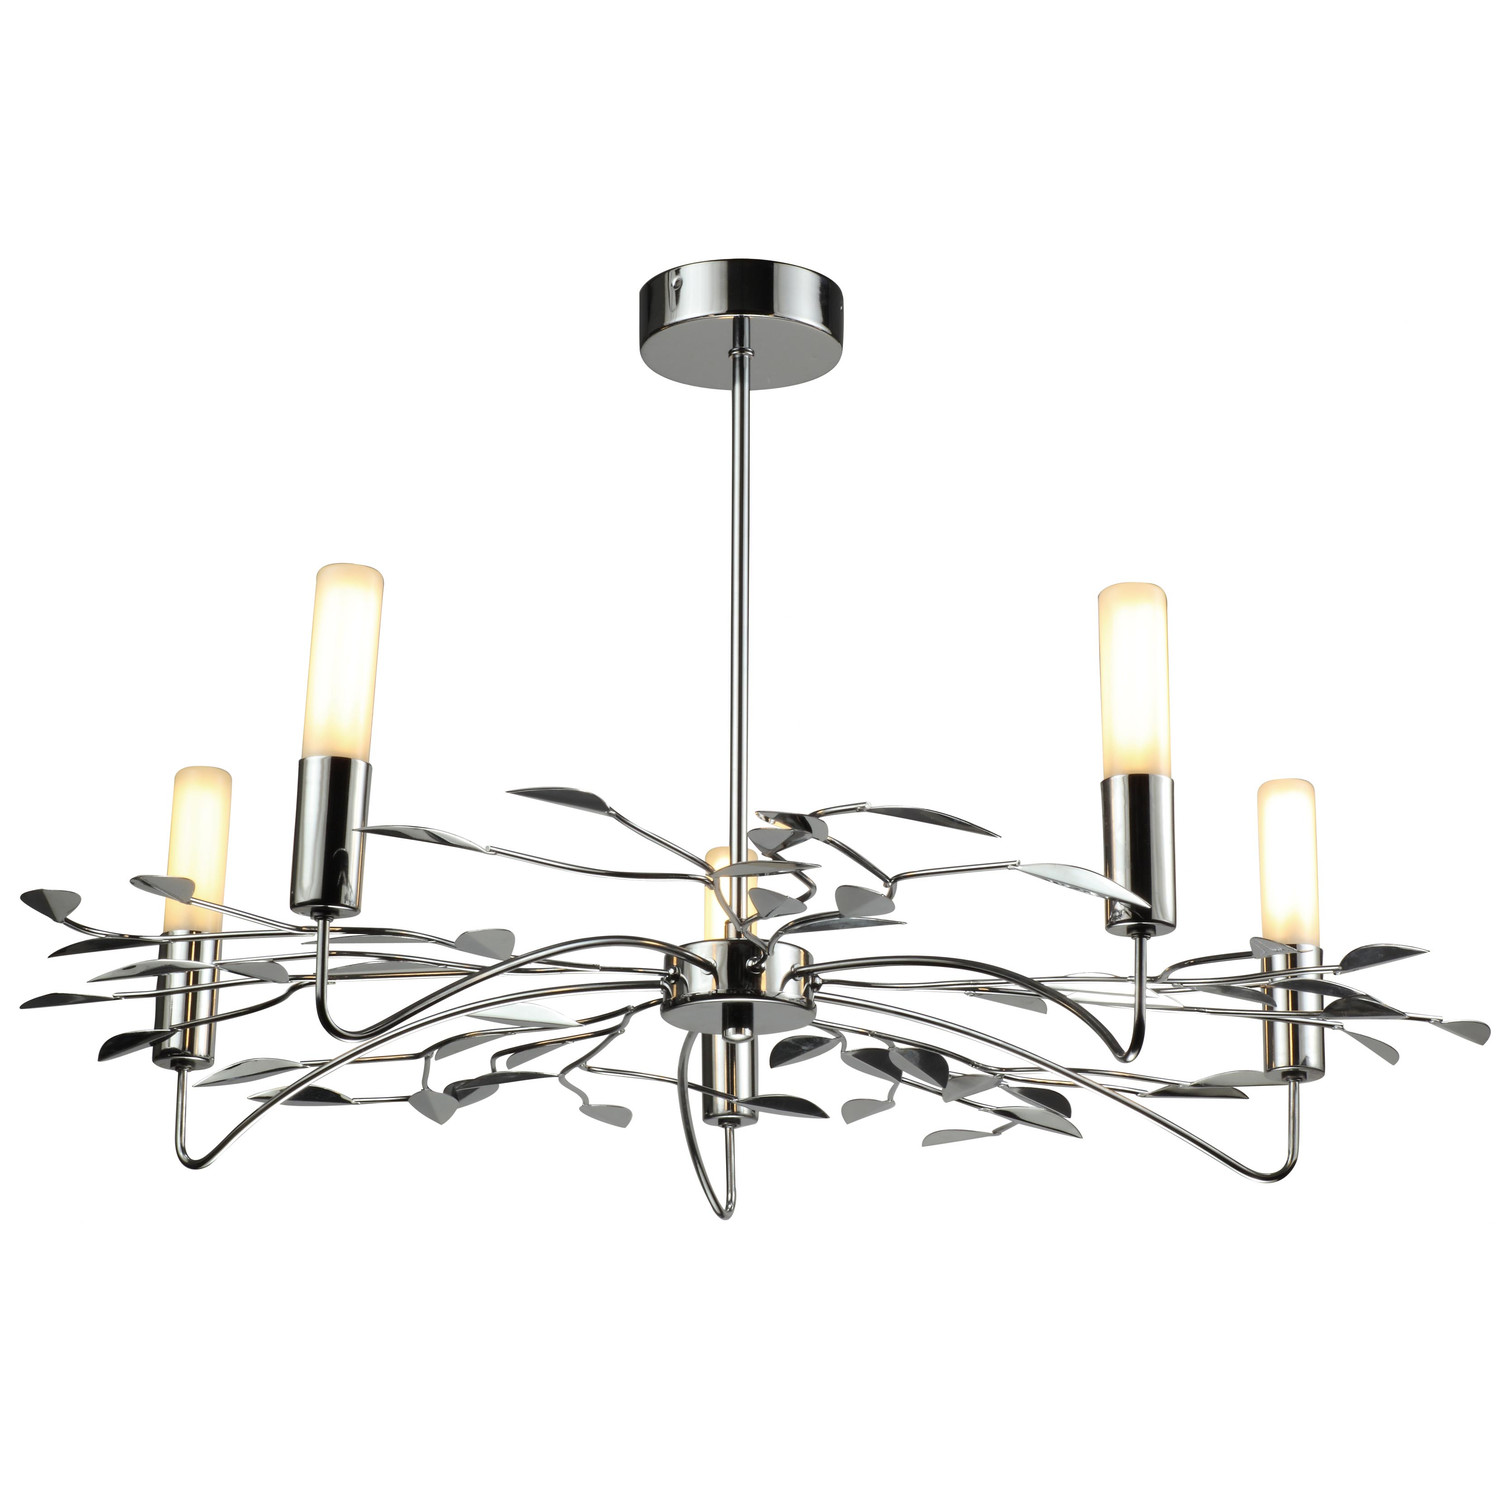 TP24 Provence 5 Light Style Chandelier Finish: Chrome 5060143877797 on